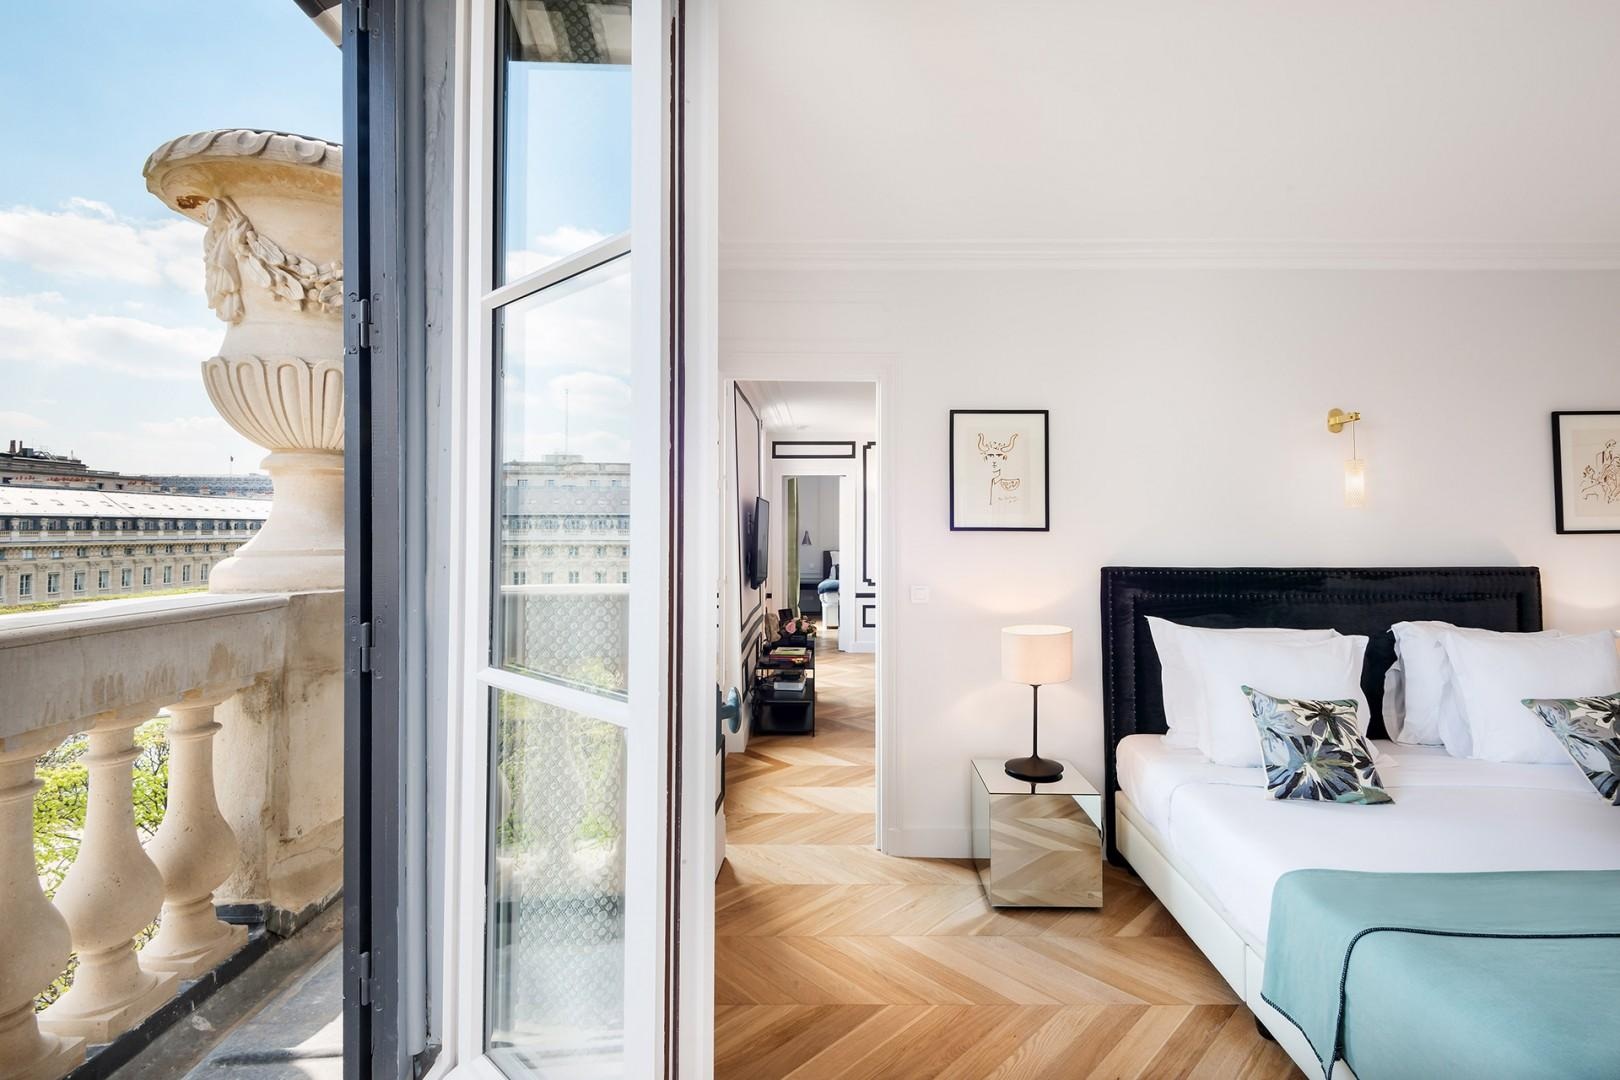 Large French windows let in lots of natural light.